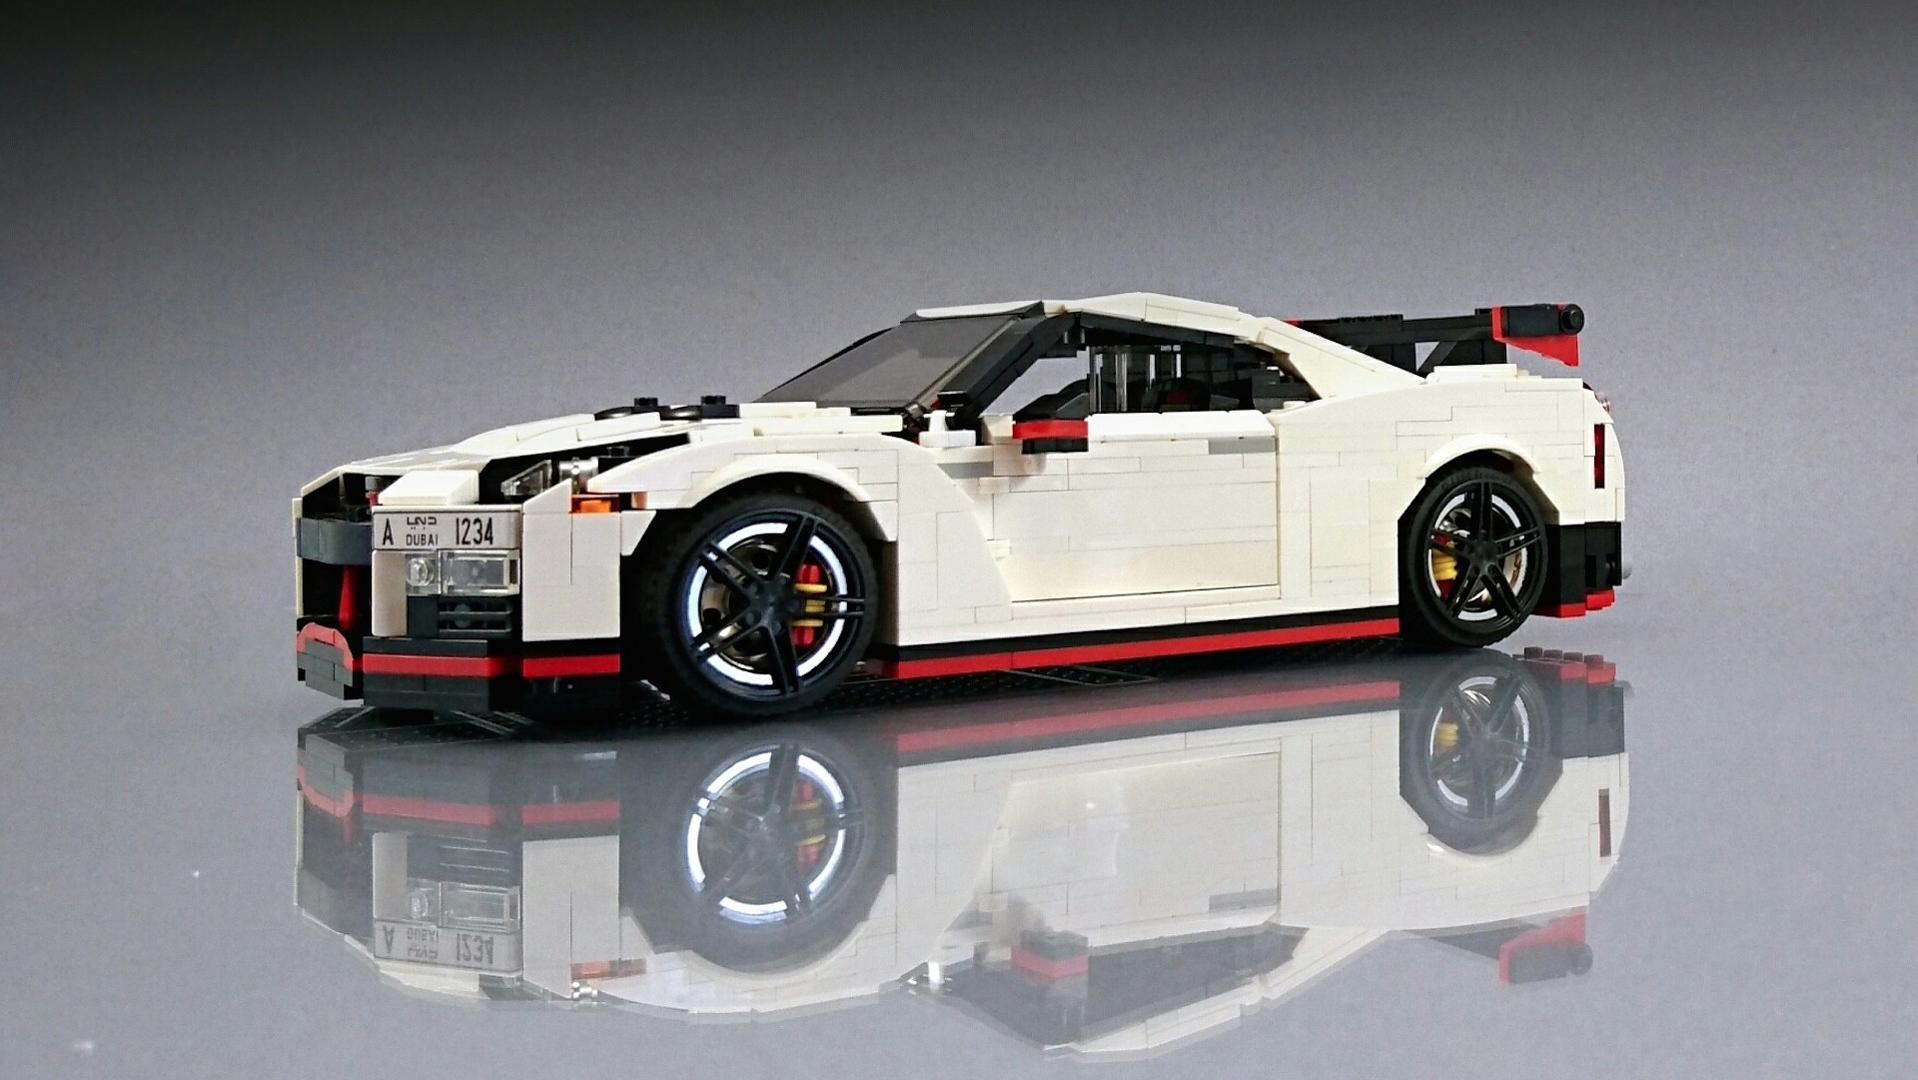 Lego Nissan Gt R Nismo Fulfills Our Childhood Speed Dreams